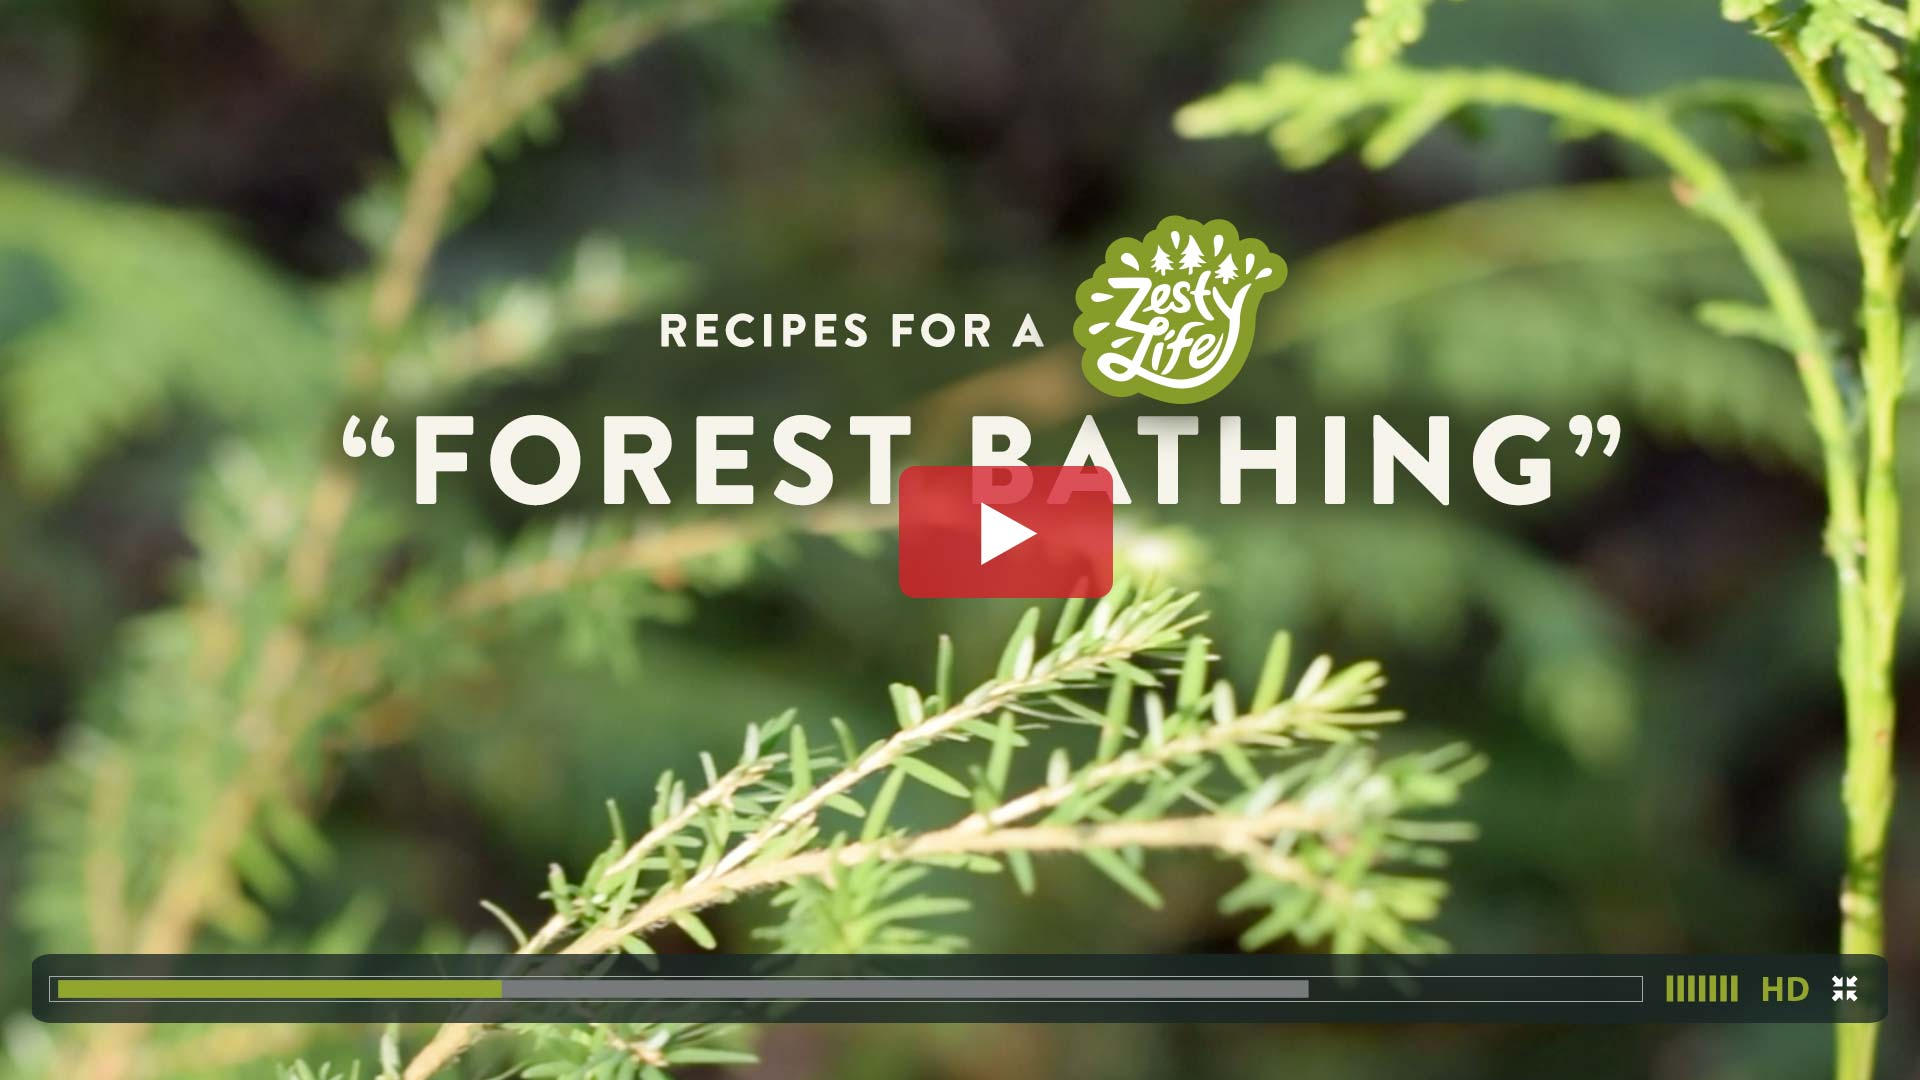 Recipes-for-a-Zesty-Life-Forest-Bathing-how-to